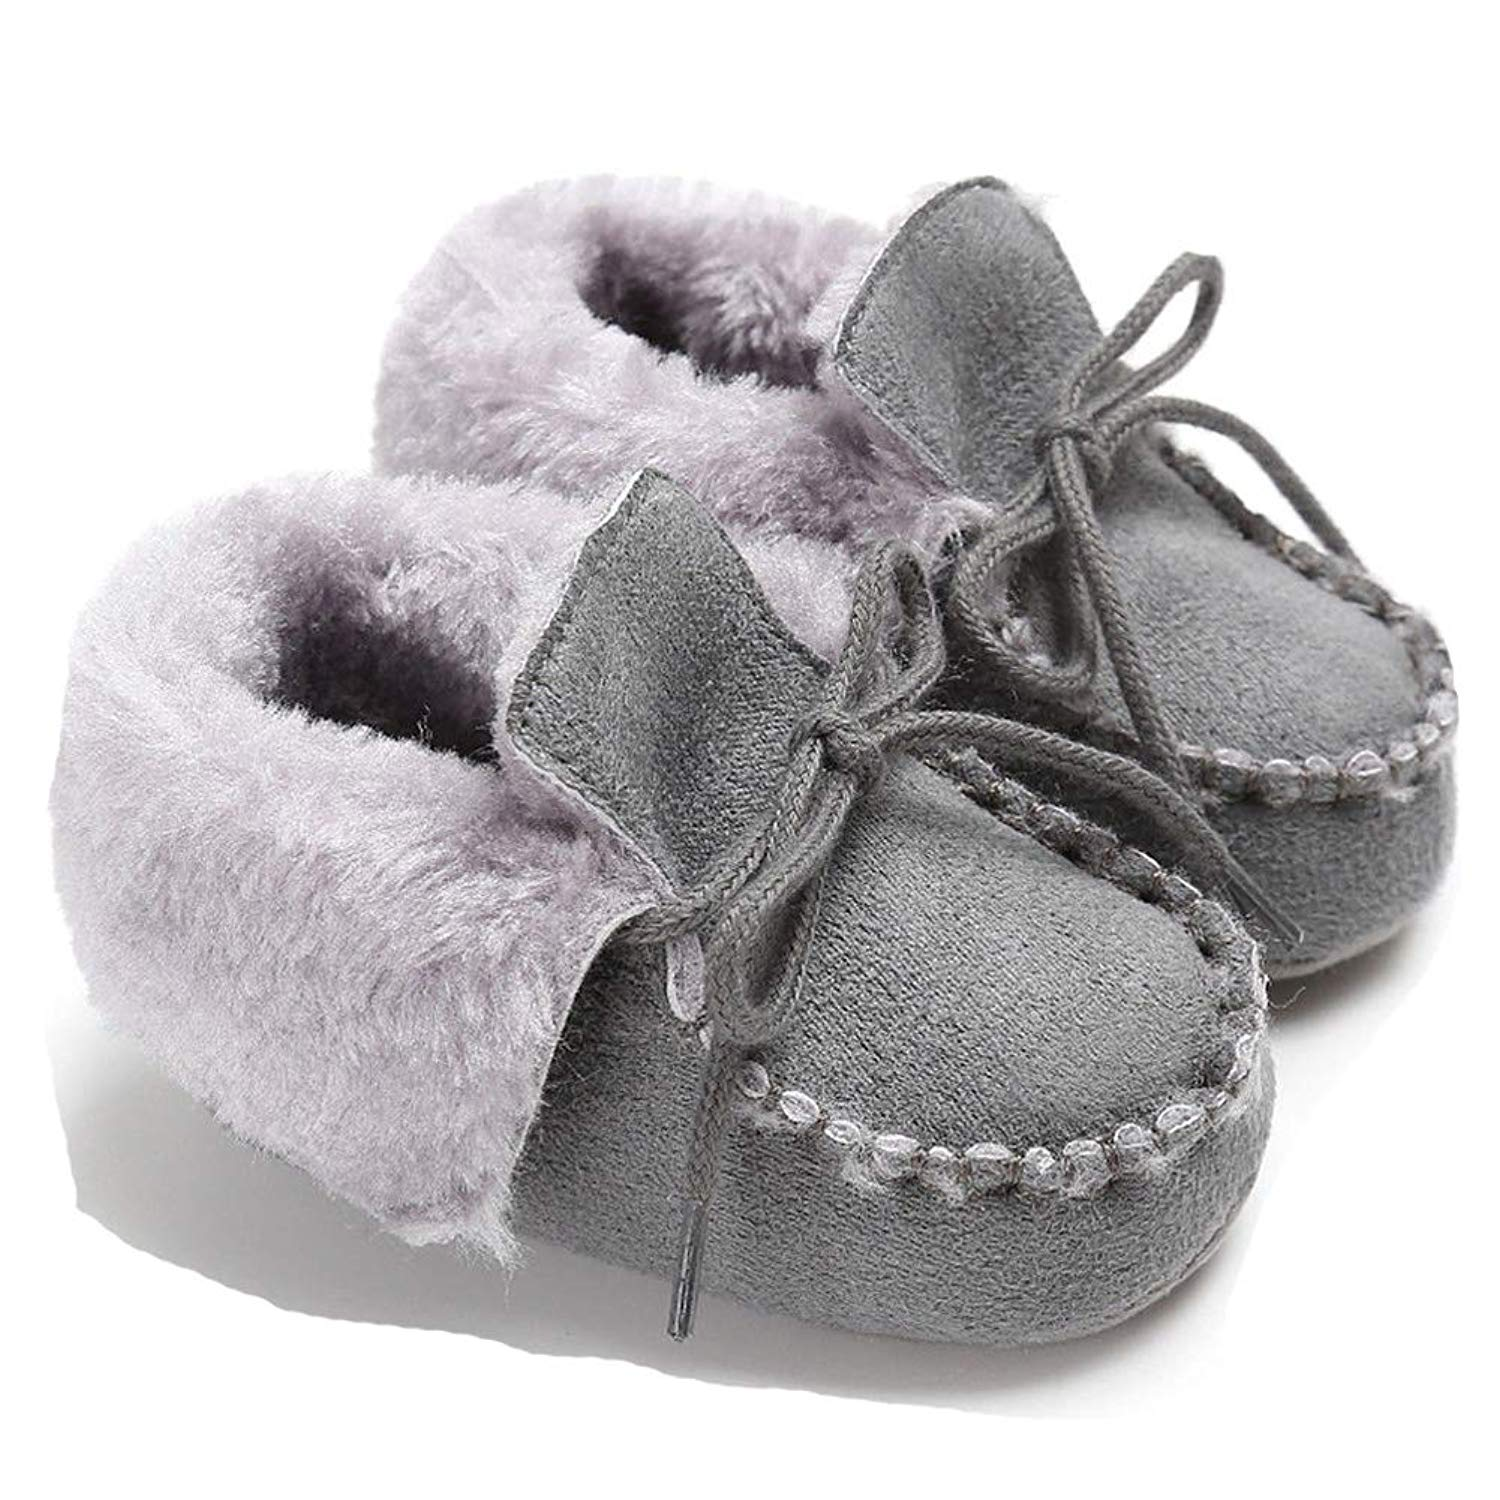 6e8f6df3555 Get Quotations · Infant Baby Boys Girls Soft Warm Winter Snow Boots  Prewalker Sole Crib Shoes